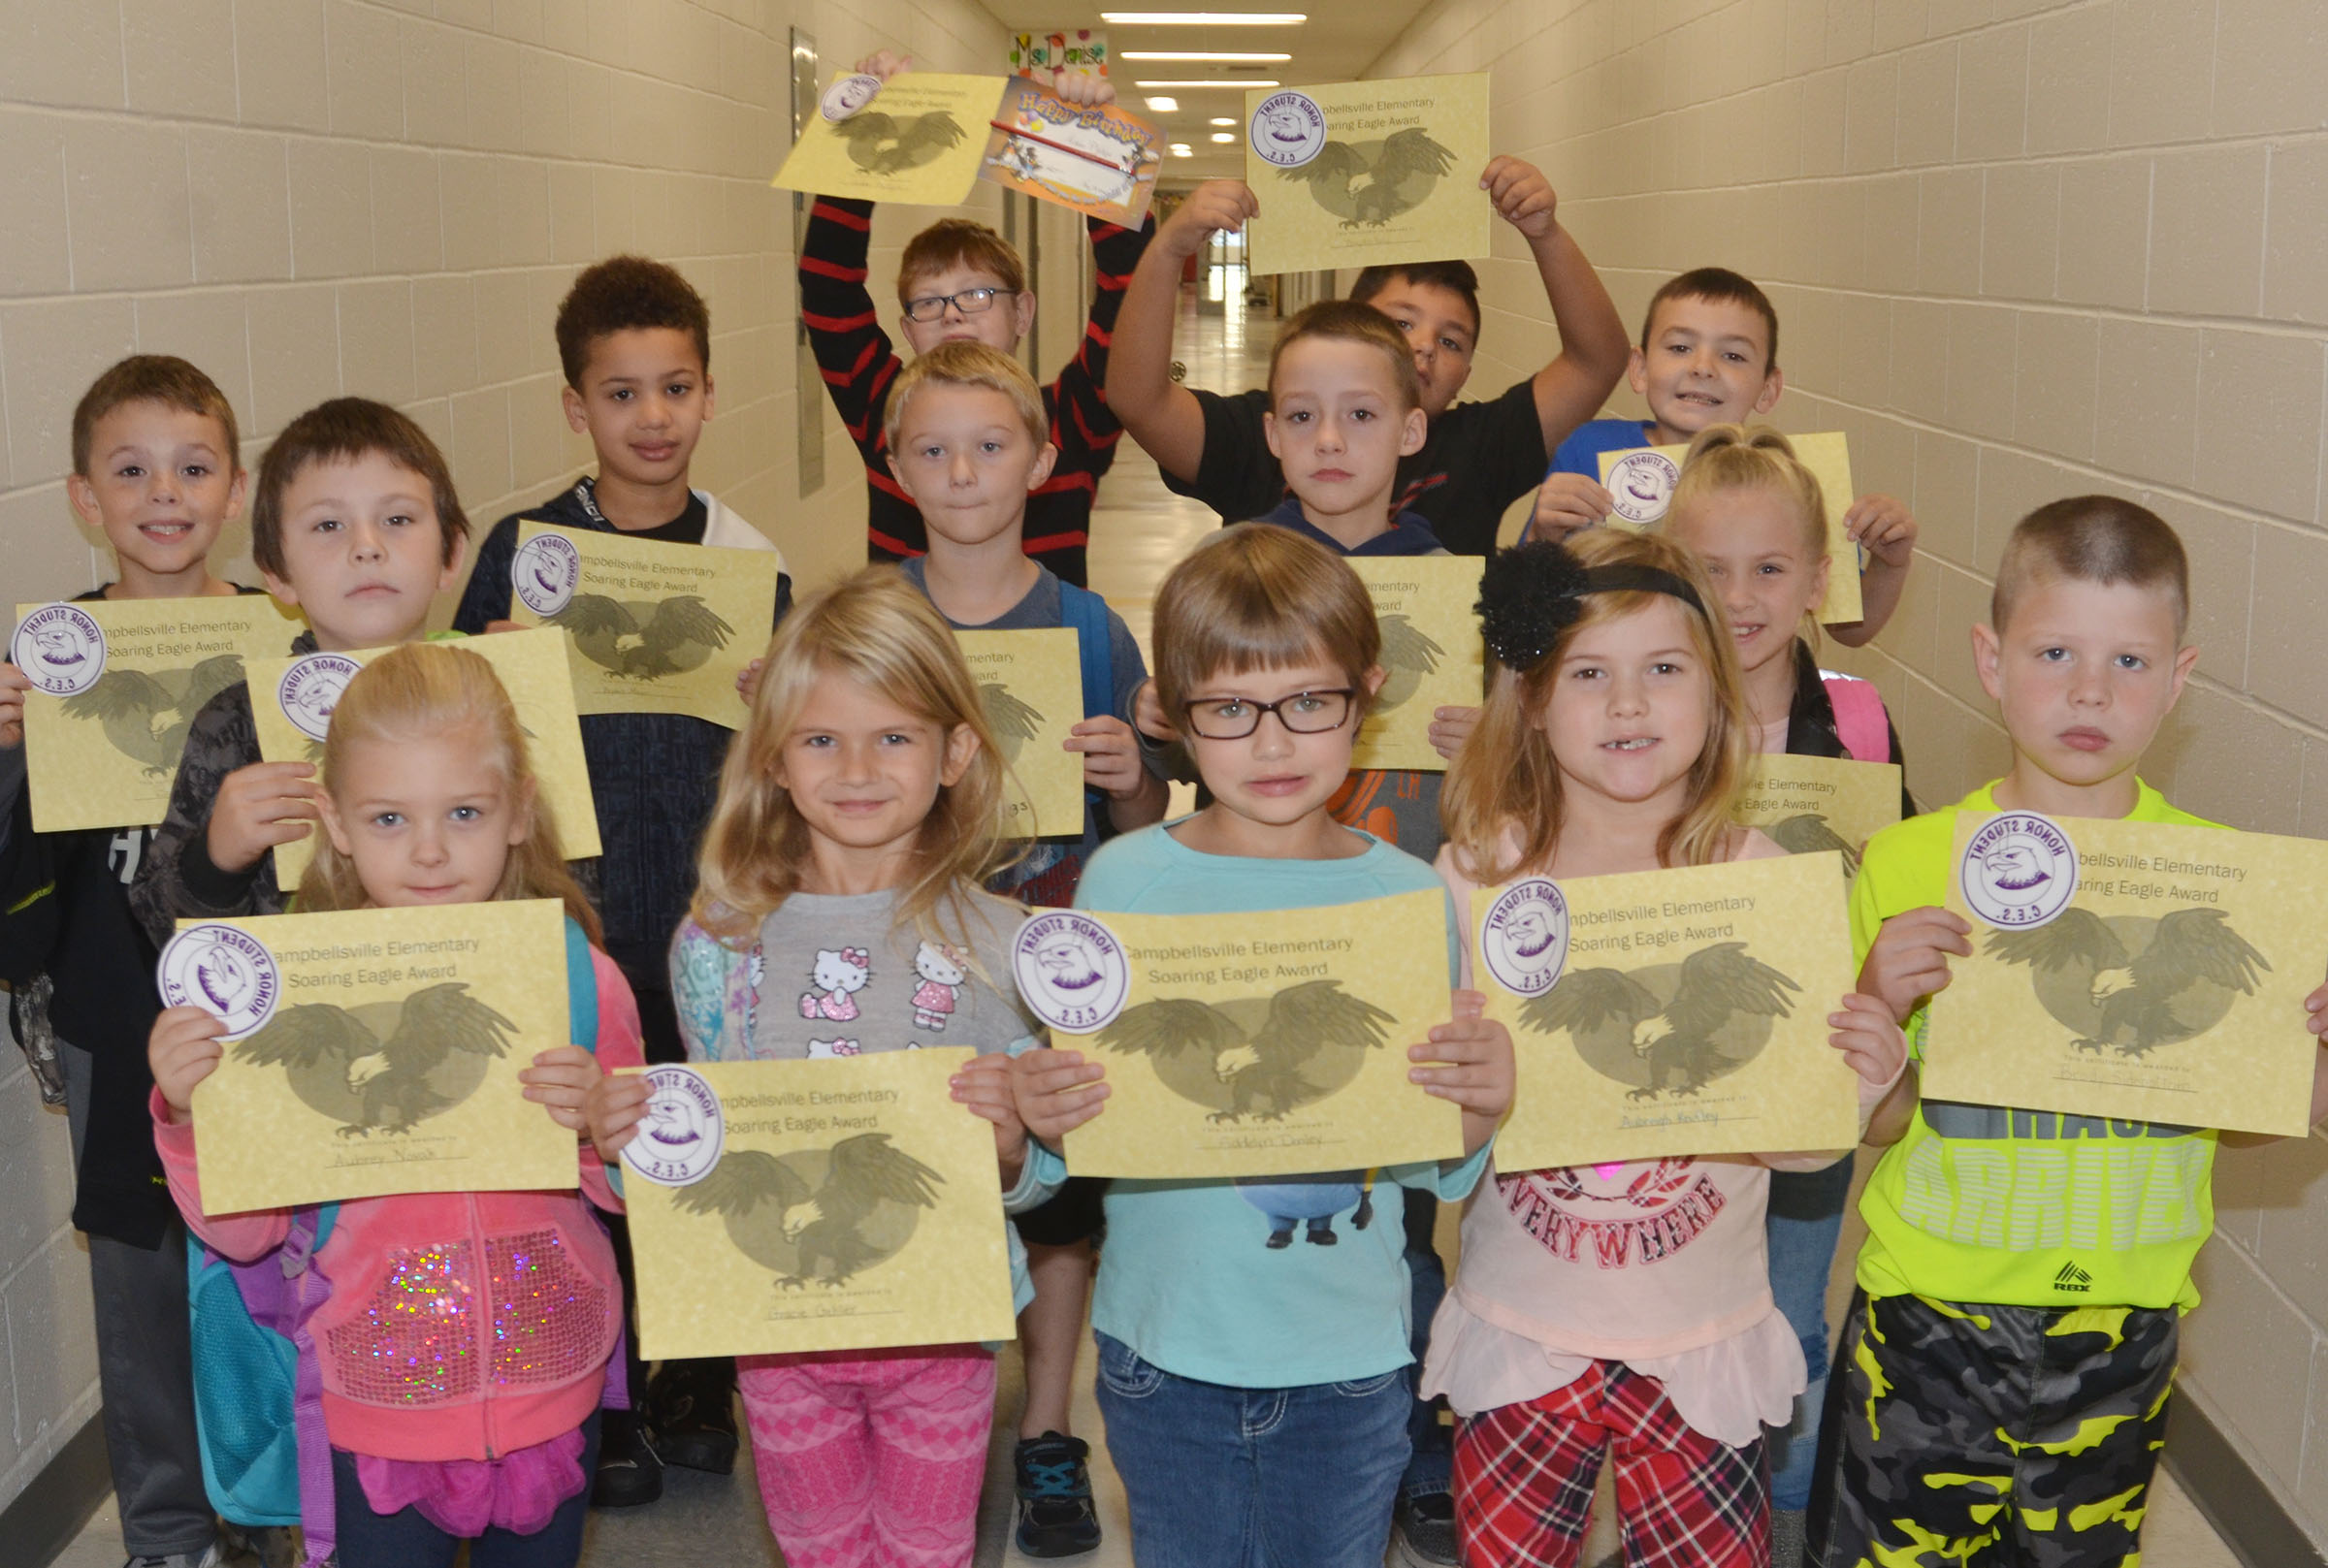 From left, front, are kindergarteners Aubrey Novak and Gracie Gebler, first-grader Addelyn Dooley, kindergartener Aubreigh Knifley and first-grader Brody Sidebottom. Second row, first-grader Fabrizio Segura, second-grader Camren Skaggs, third-grader Caysen Tungate and second-grader Ava Ellis. Back, third-grader Brayden Judd, first-grader Bryant Mayo, third-graders Aidan Phillips ad Brayden Paiz and second-grader Hunter Garmon. Not pictured are kindergarteners Raelin Goddard and Aleja Taylor.